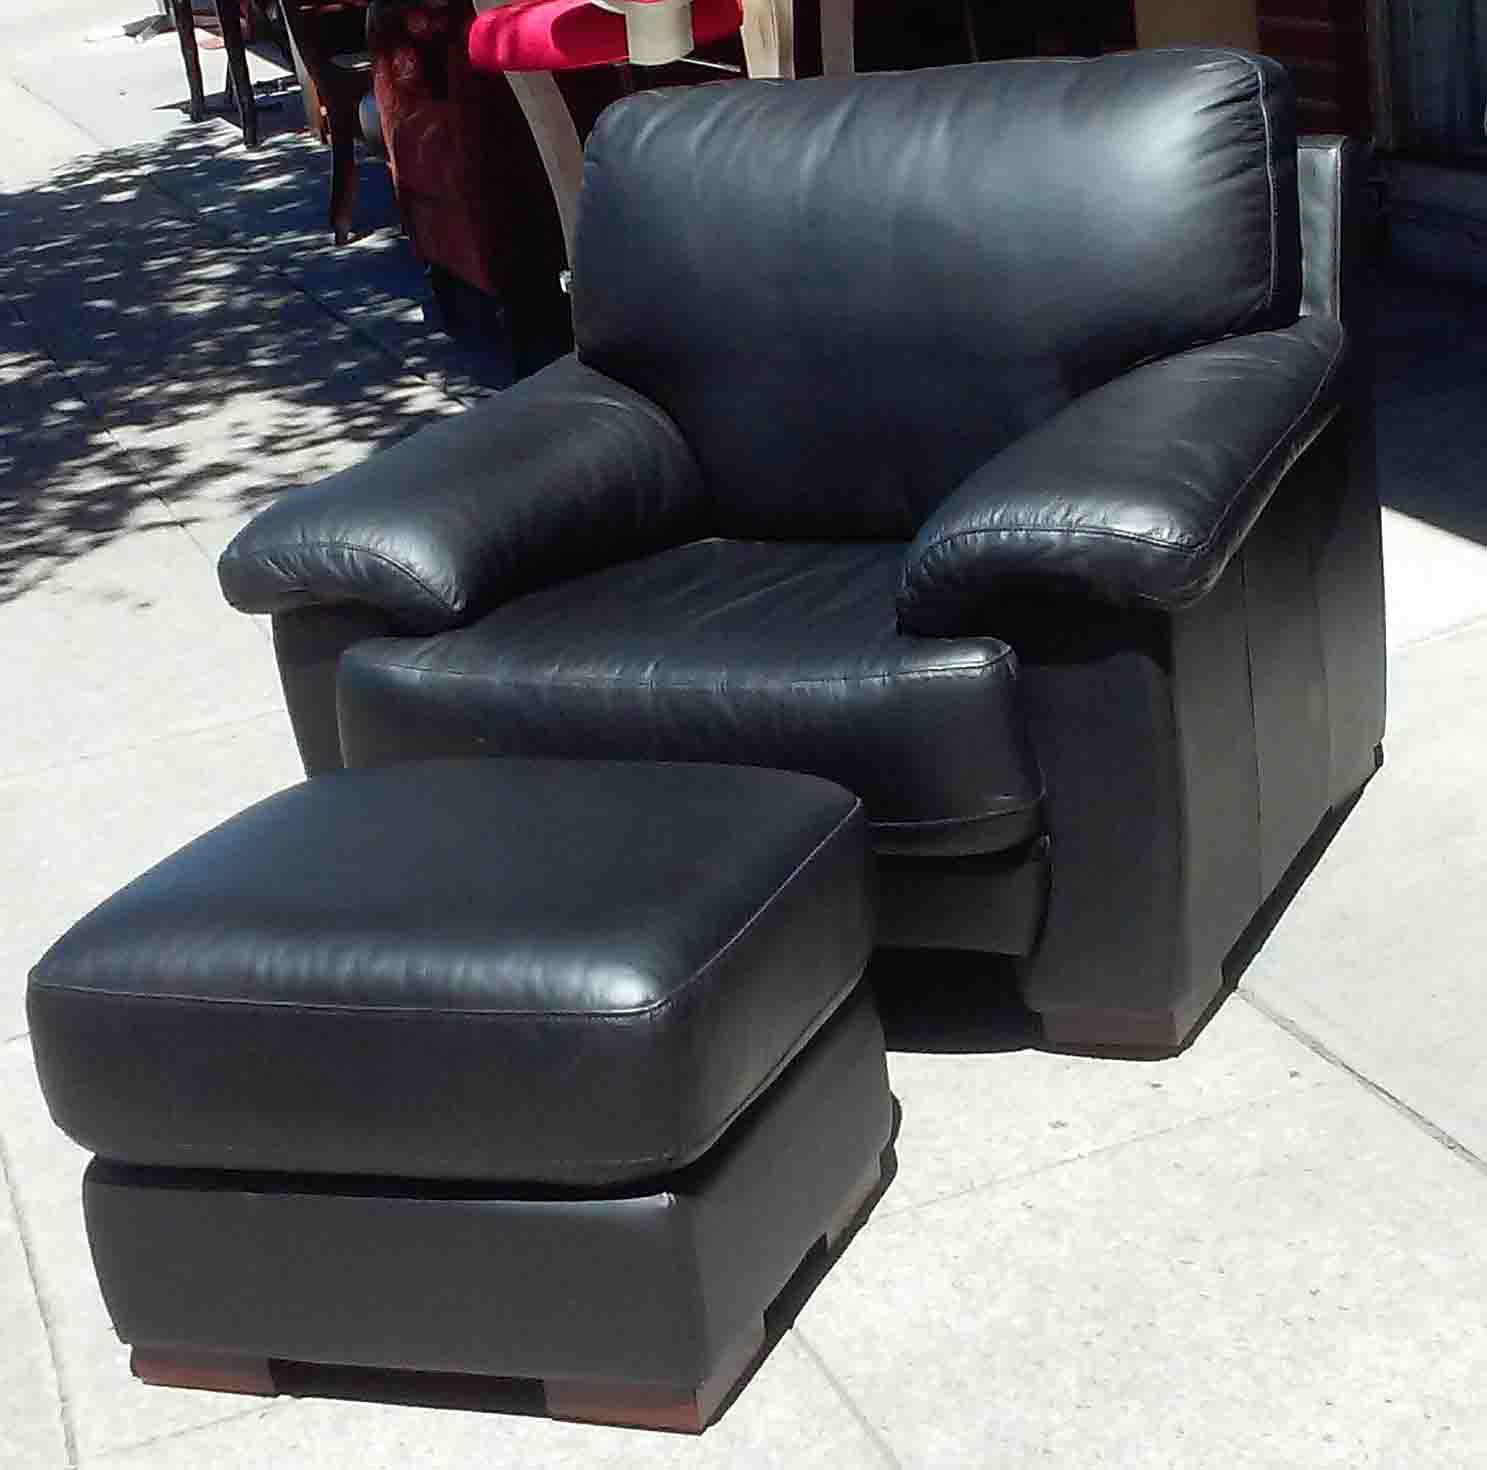 UHURU FURNITURE & COLLECTIBLES: SOLD Black Leather Chair ...